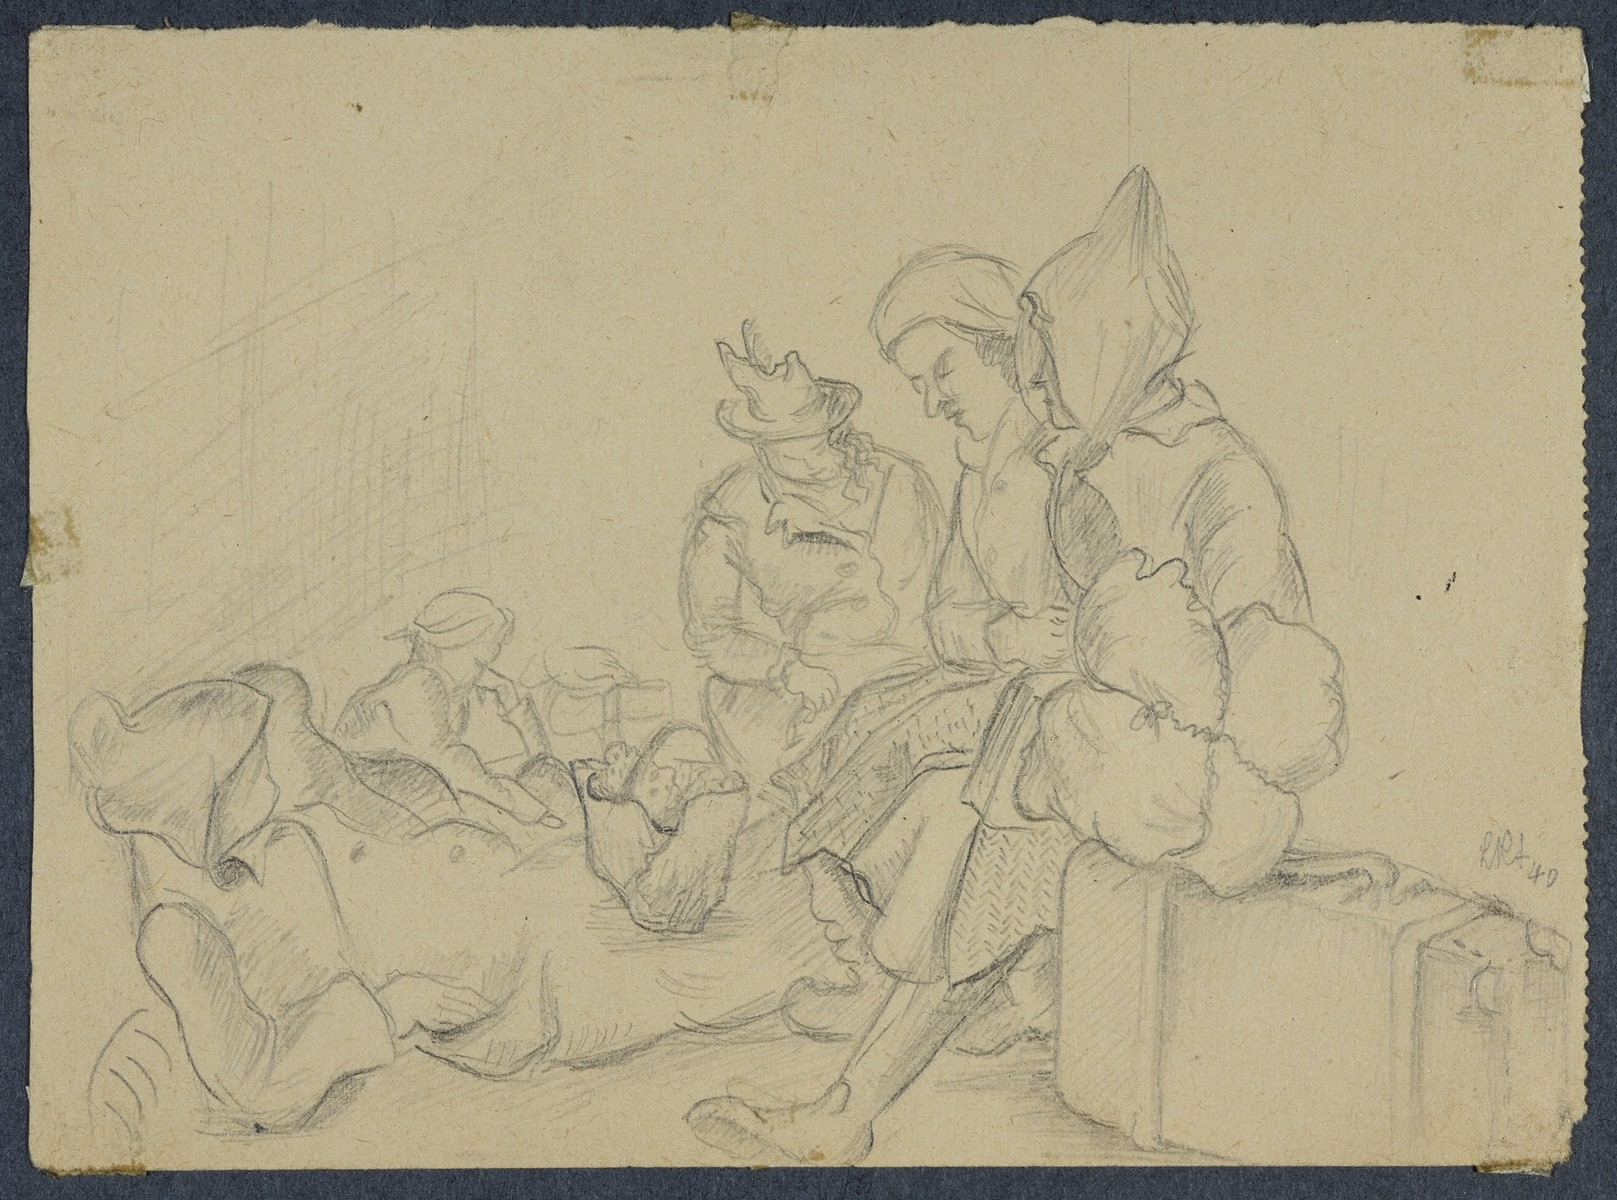 """Waiting for Deportation (VersionII)"" by Lili Andrieux.  Sketch of women sitting on suitcases and on the ground with bags and a basket."